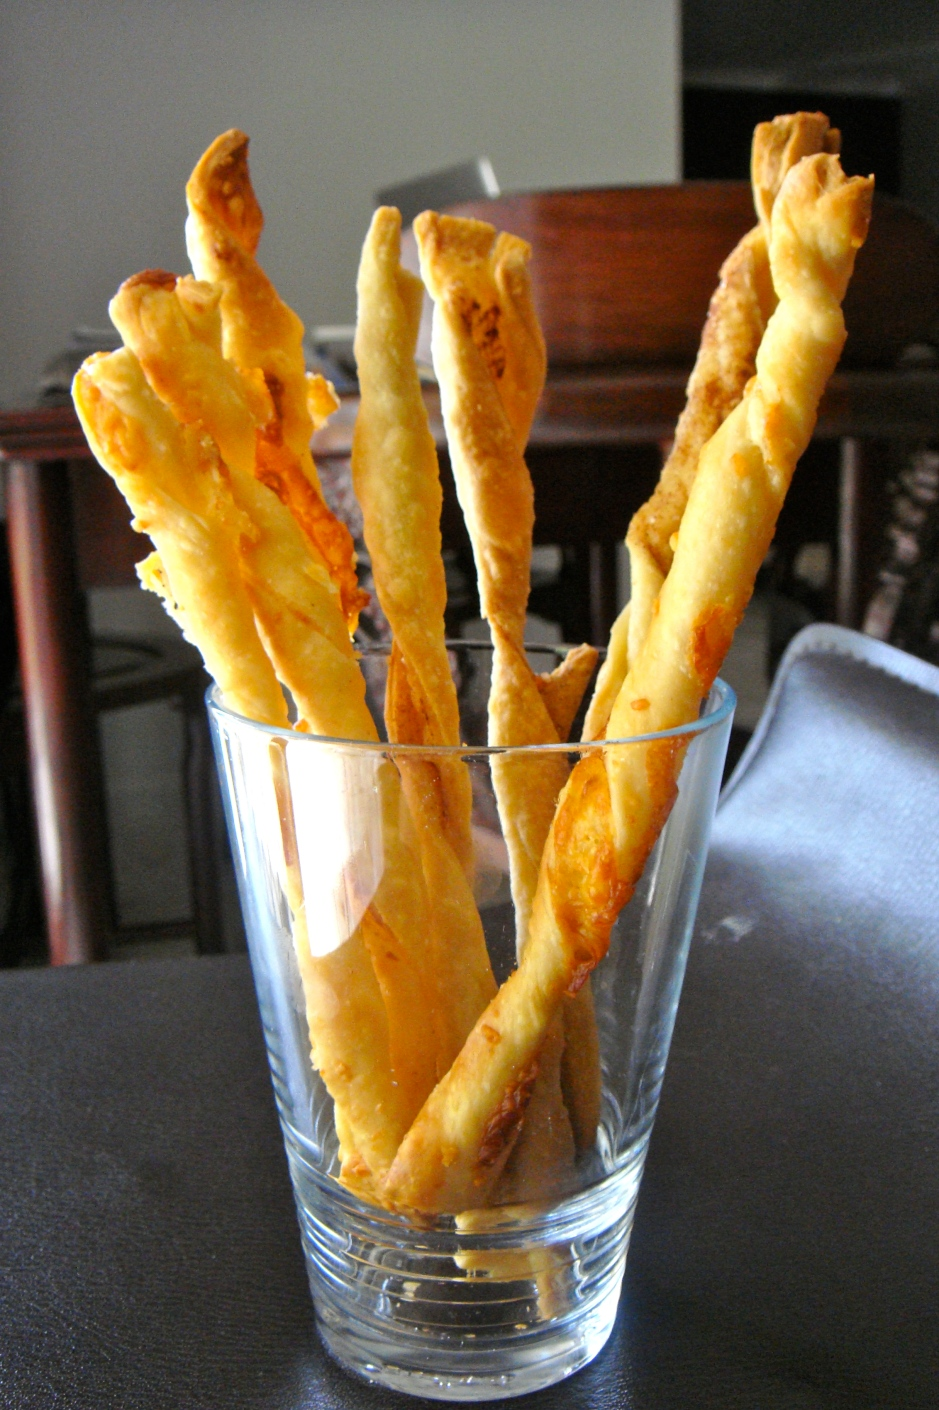 Homemade Cinnamon Twists & Cheese Straws